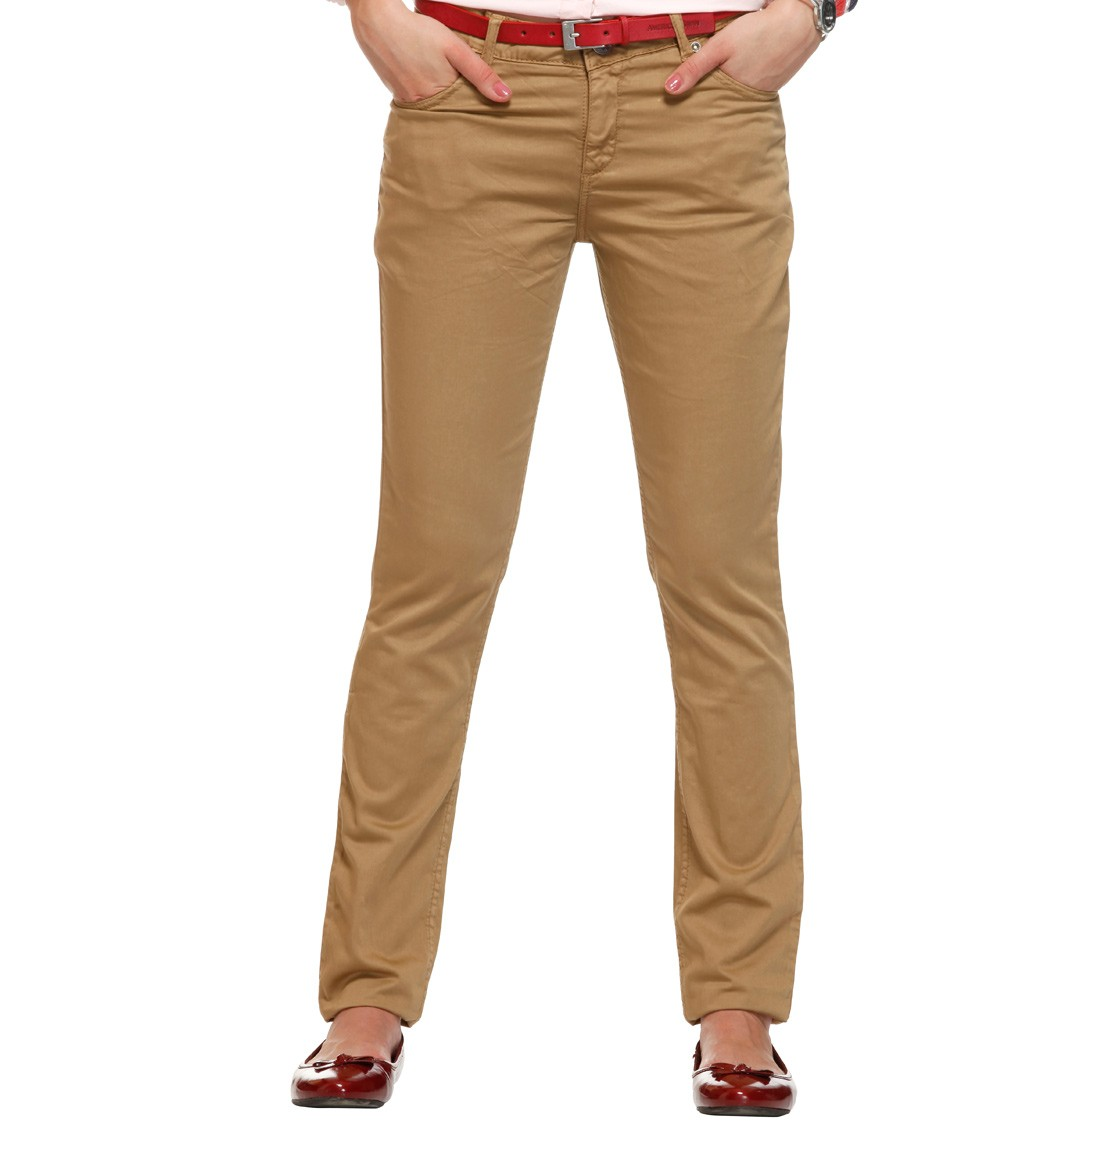 Easy-to-wear chinos